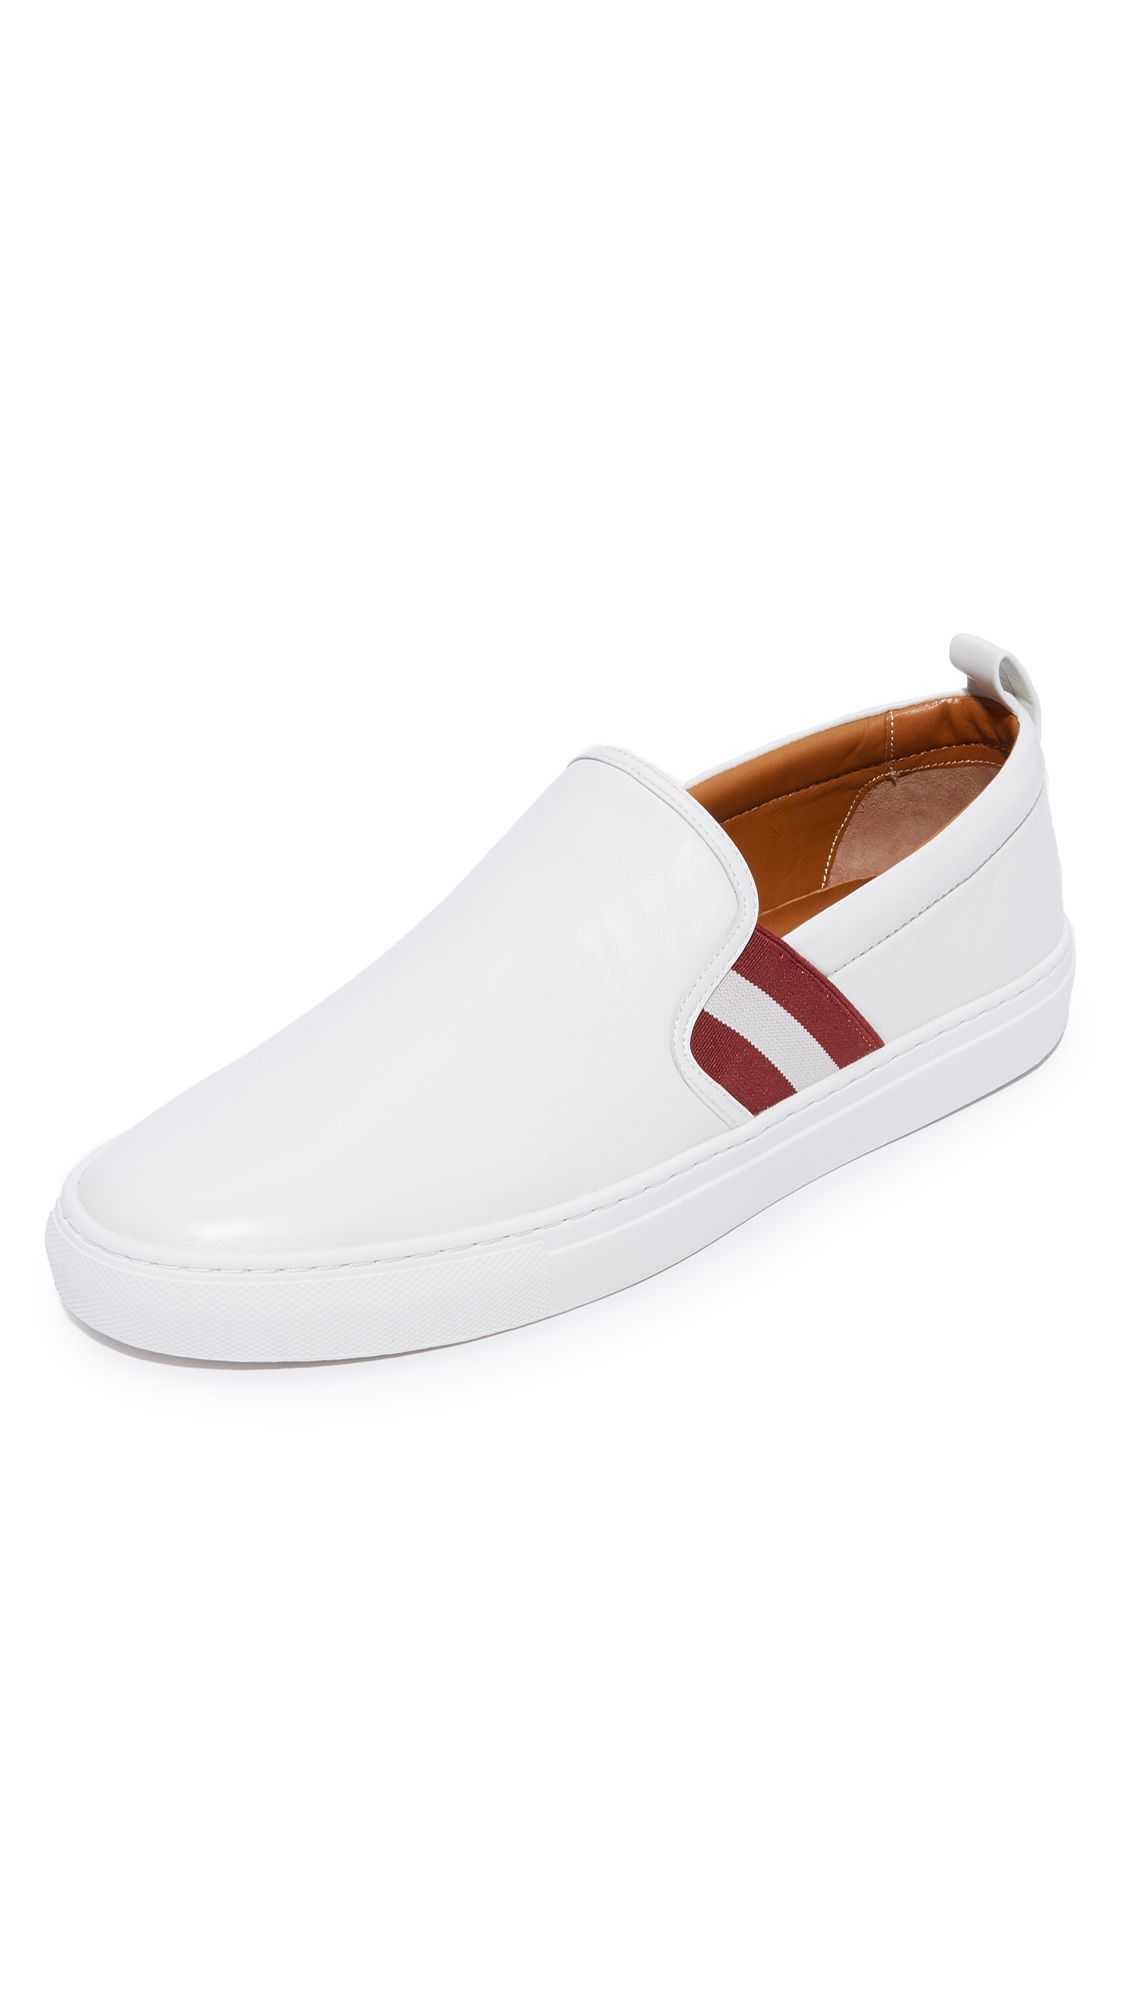 Bally Leather Slip-on Sneakers Sneakers